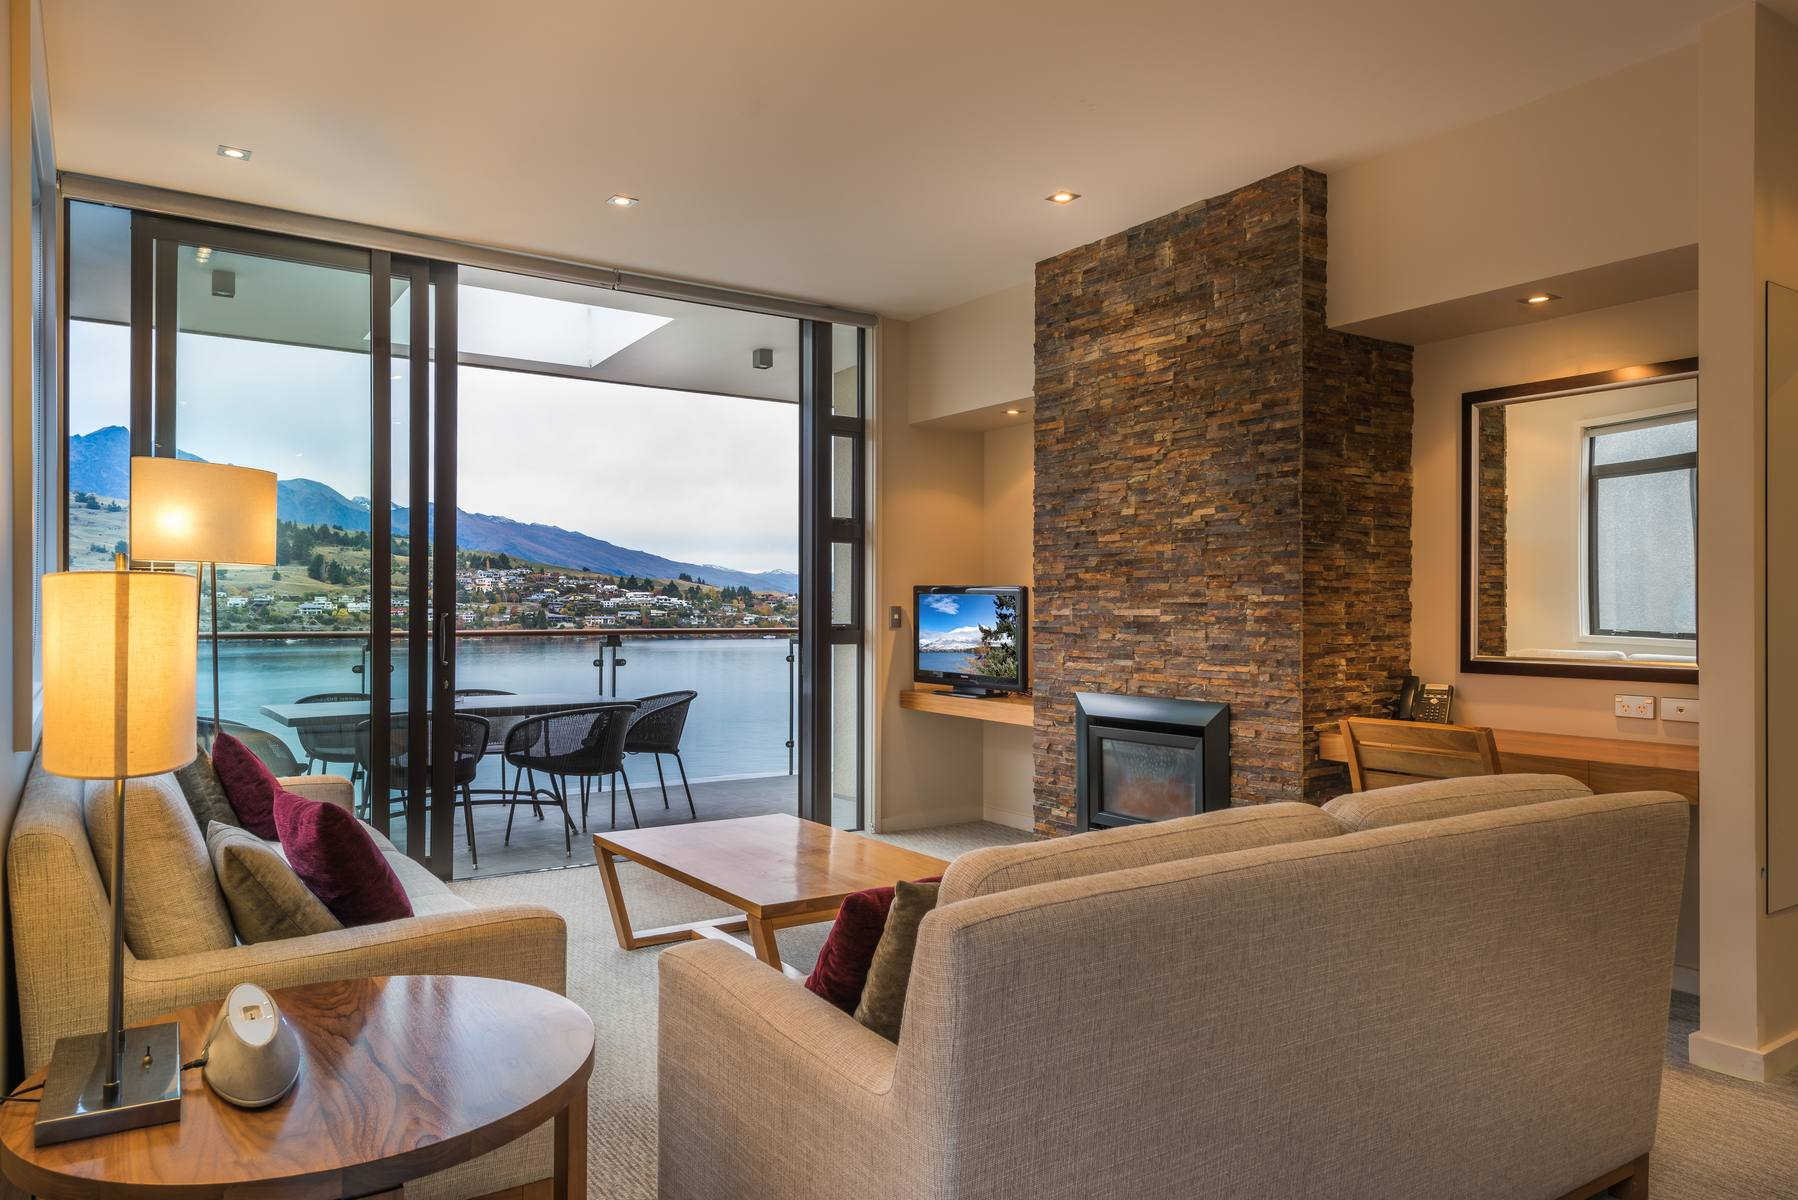 Apartment for Sale at The Rees Apartment 411 The Rees Queenstown, Otago 9300 New Zealand